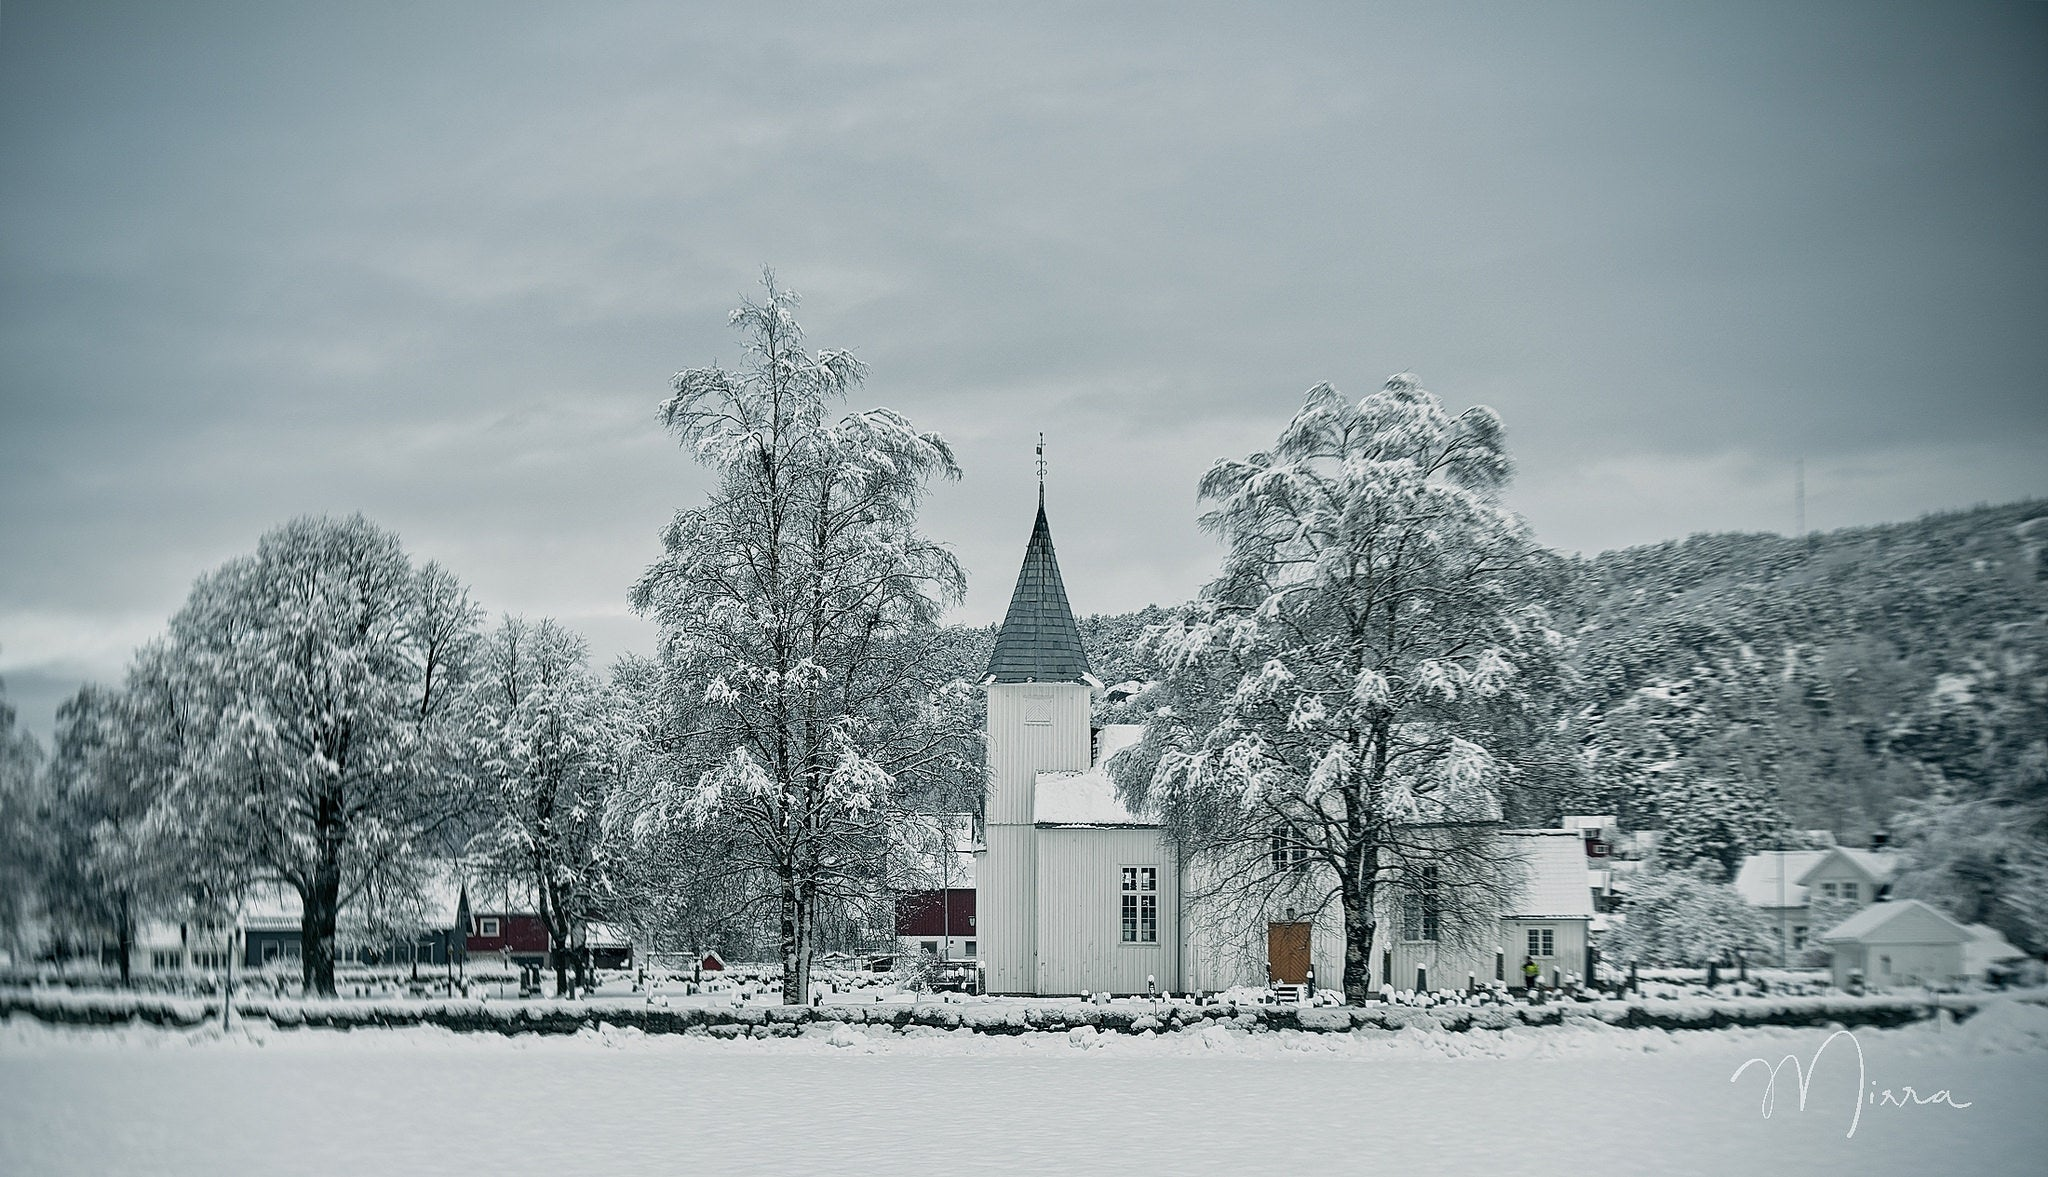 snow covered ground white church snowy trees winter scene landscape photography Lensbaby featured photos